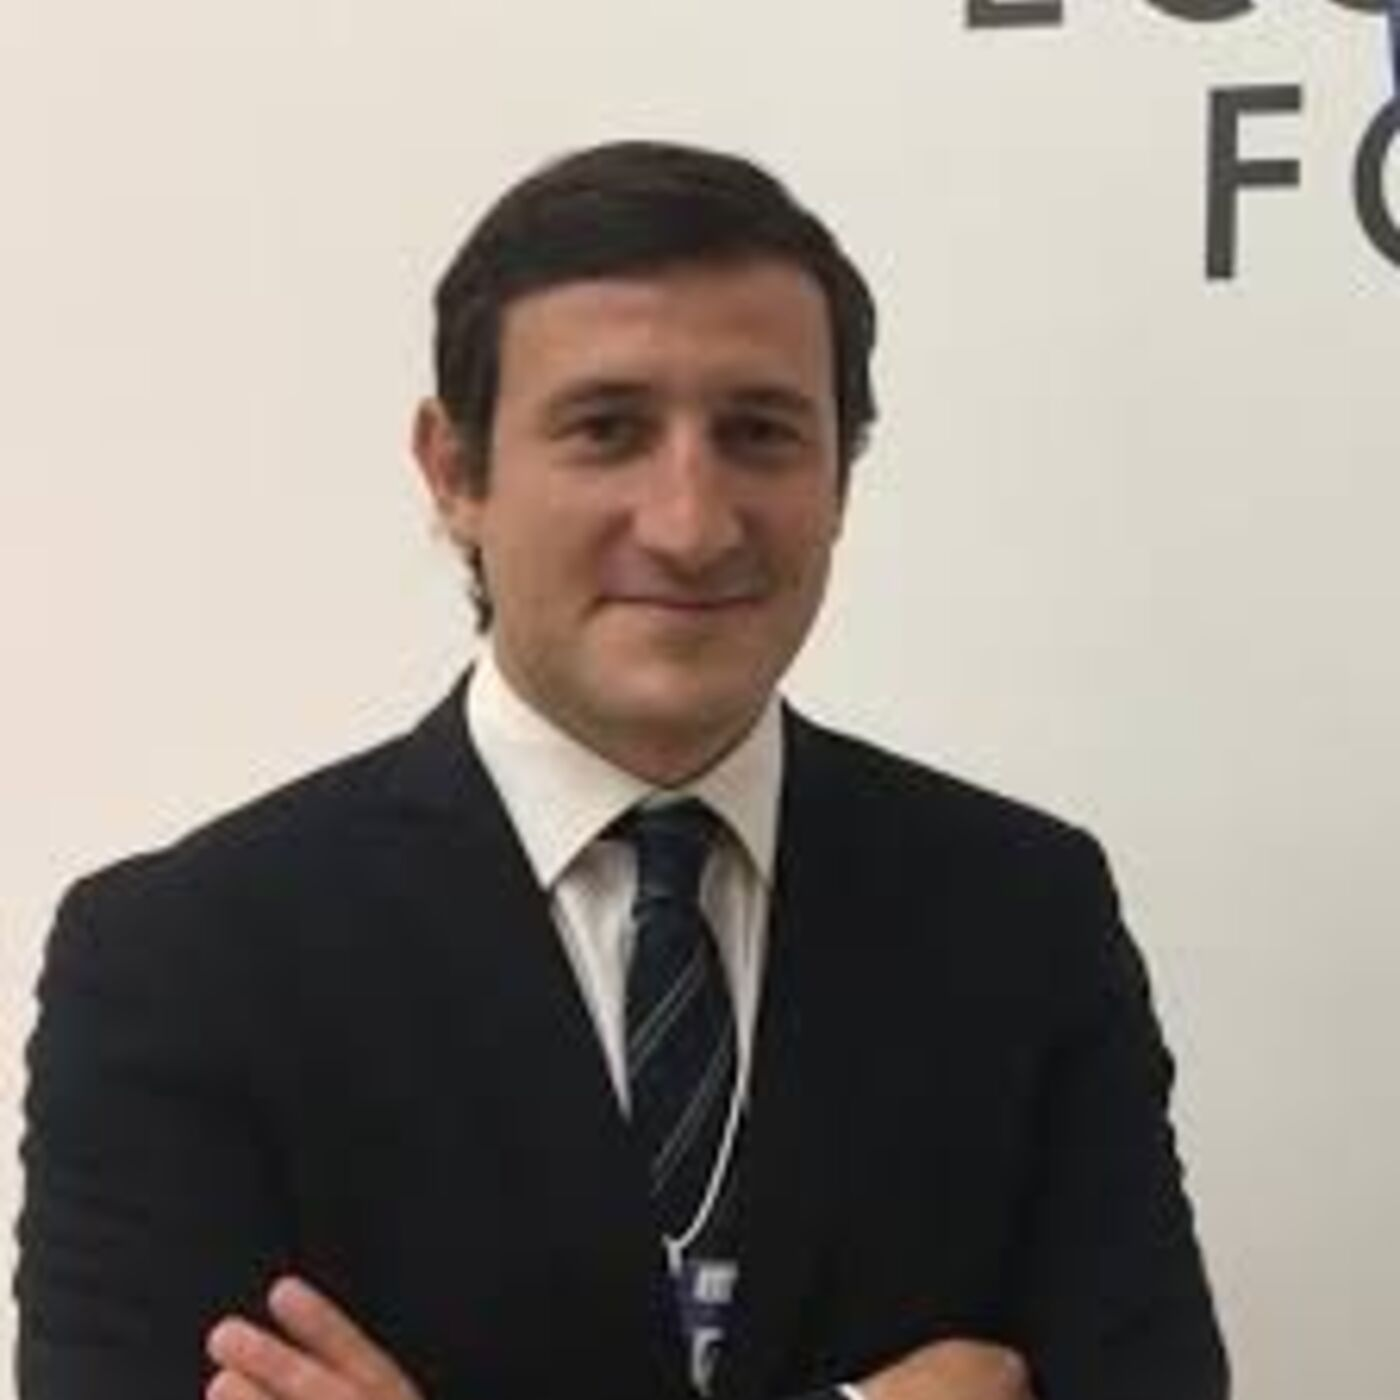 #99: Francisco Betti Head of Advanced Manufacturing and Production at World Economic Forum